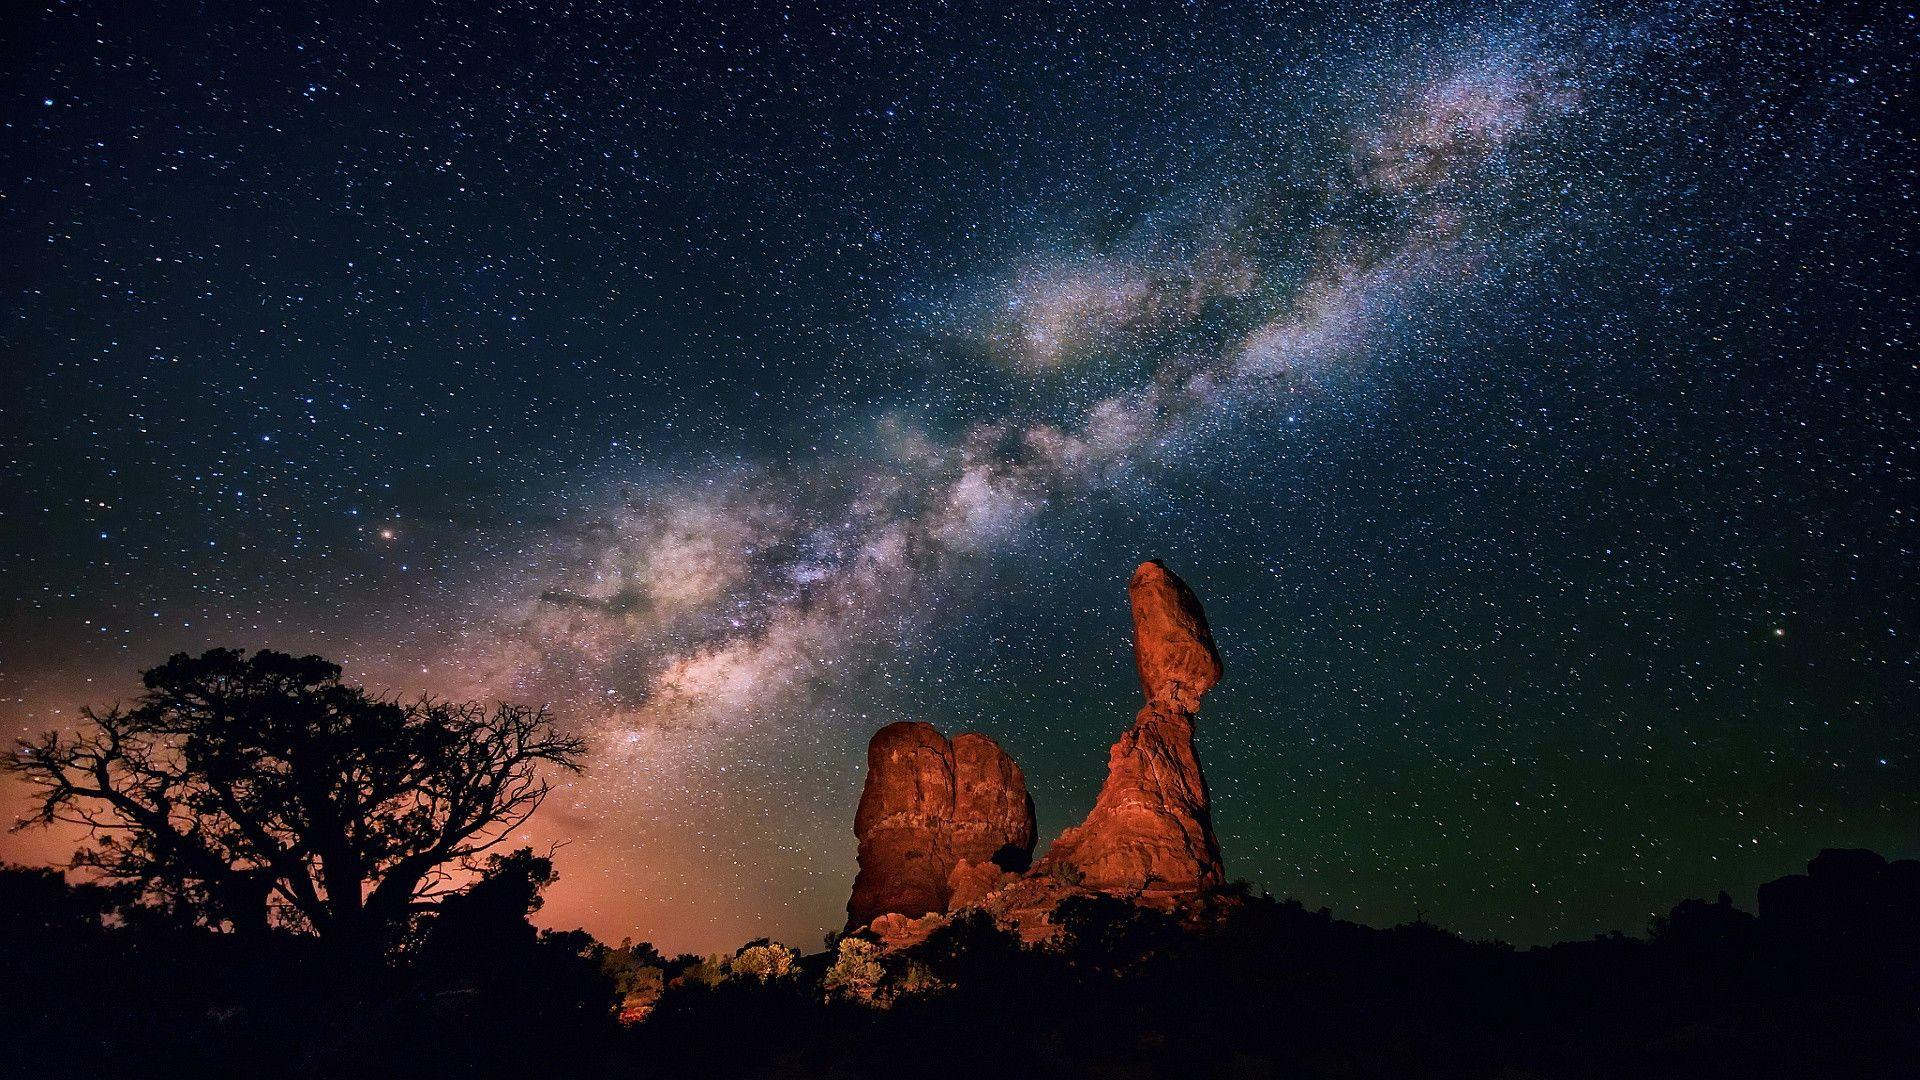 Milky Way Wallpapers 2334 HD Desktop Backgrounds and Widescreen